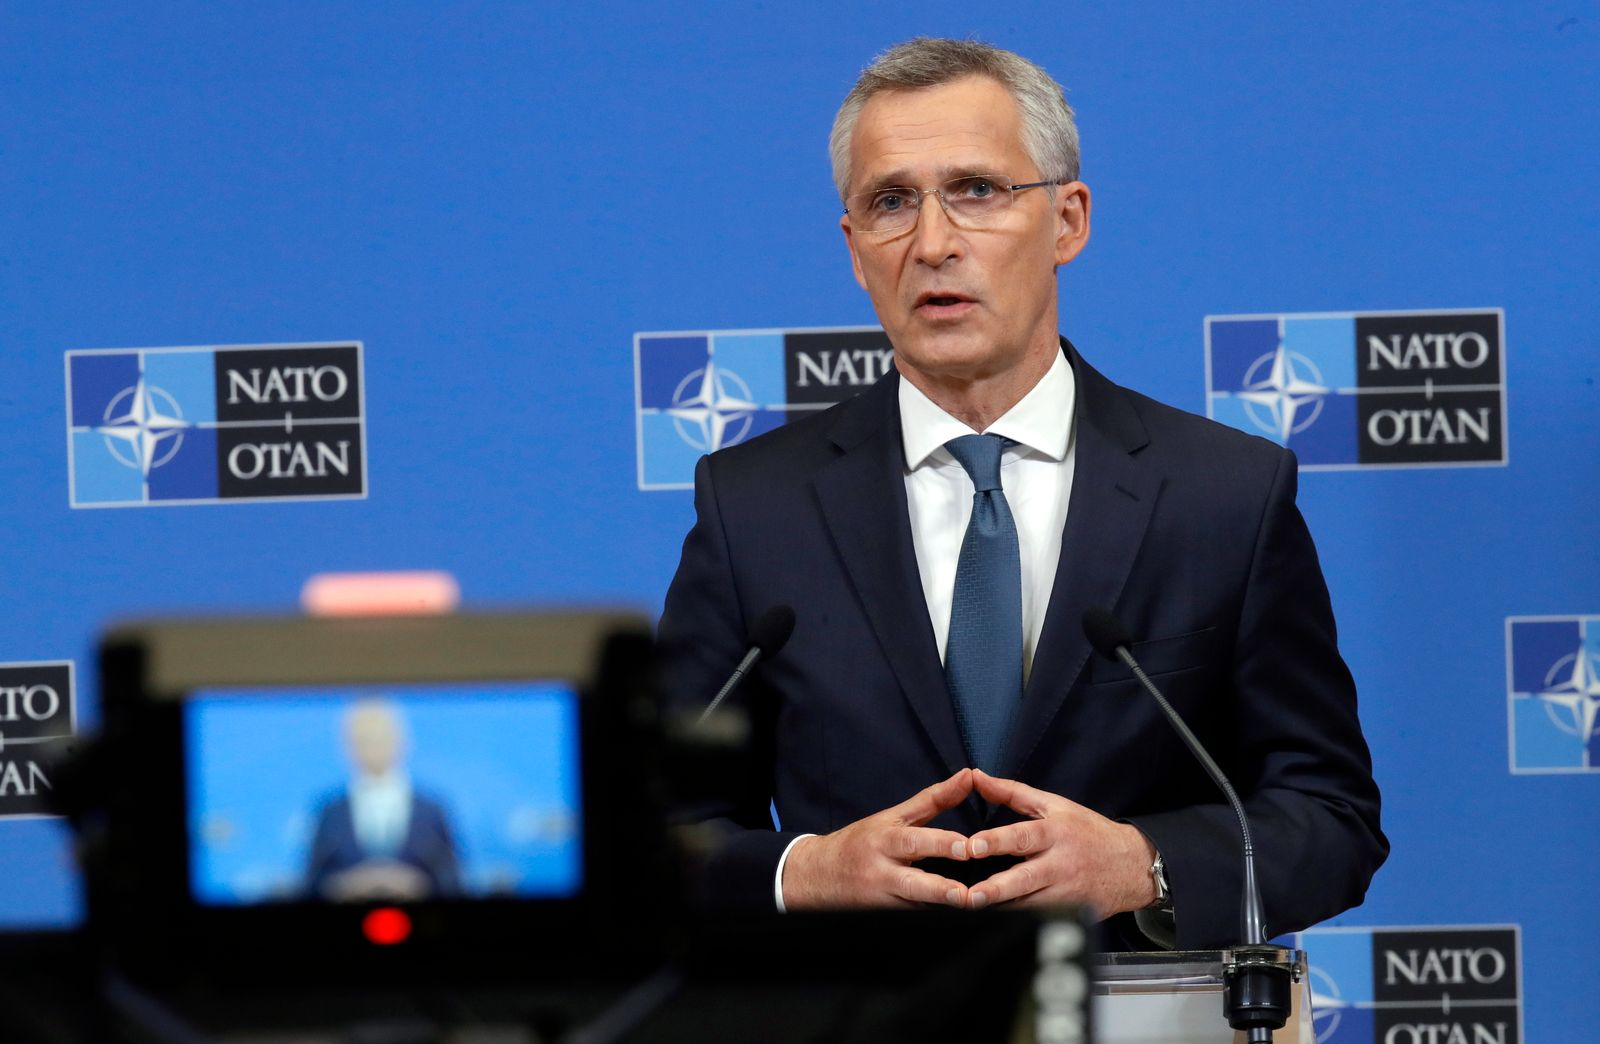 Press conference ahead of NATO Ministers of Foreign Affairs and Defence meetings in Brussels